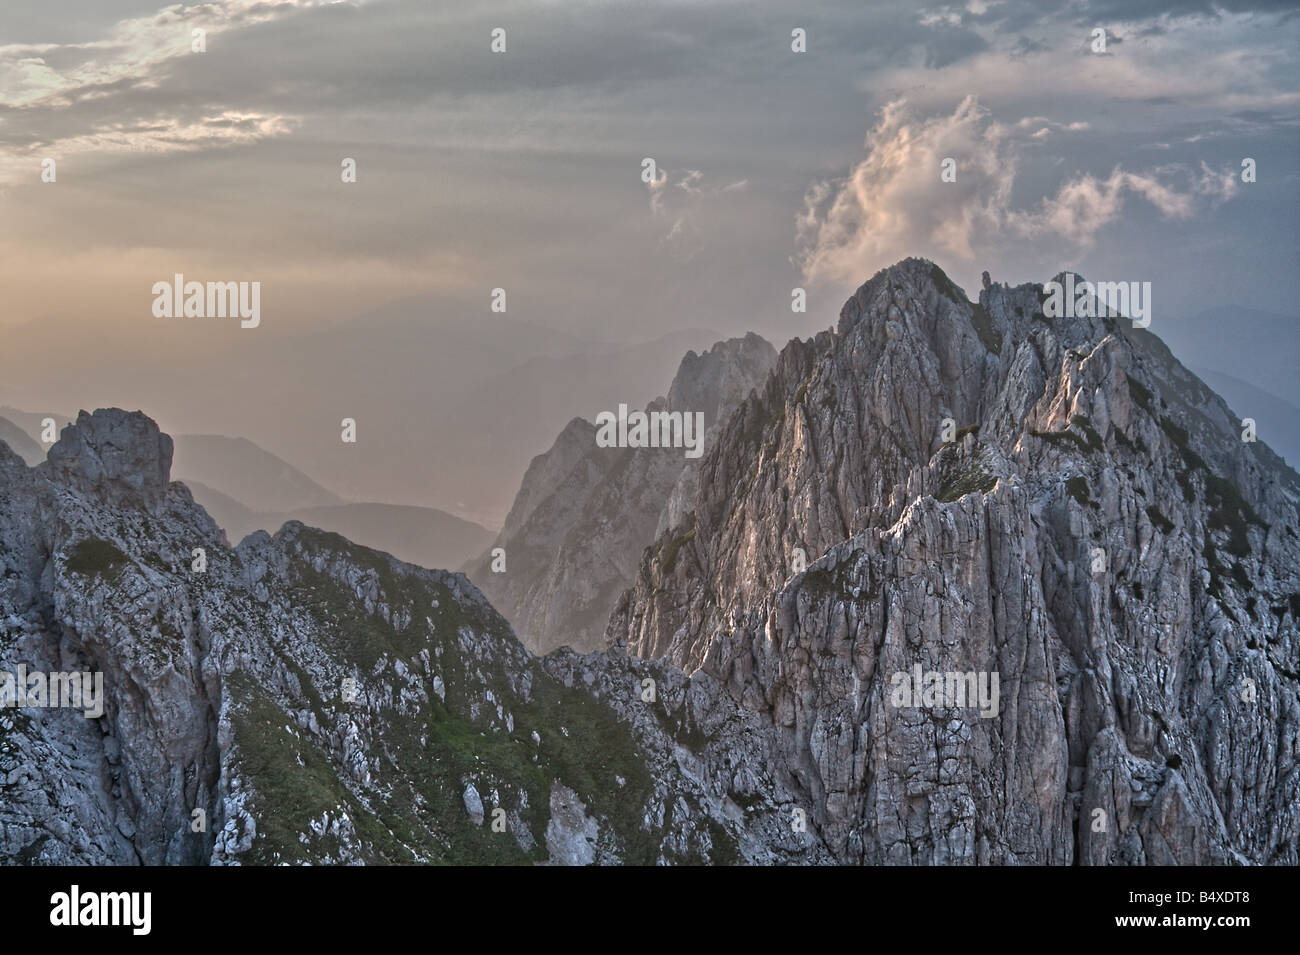 Peaks and mists on the Italian side of the Mangart Pass in the Julian Alps at Sunset - Stock Image